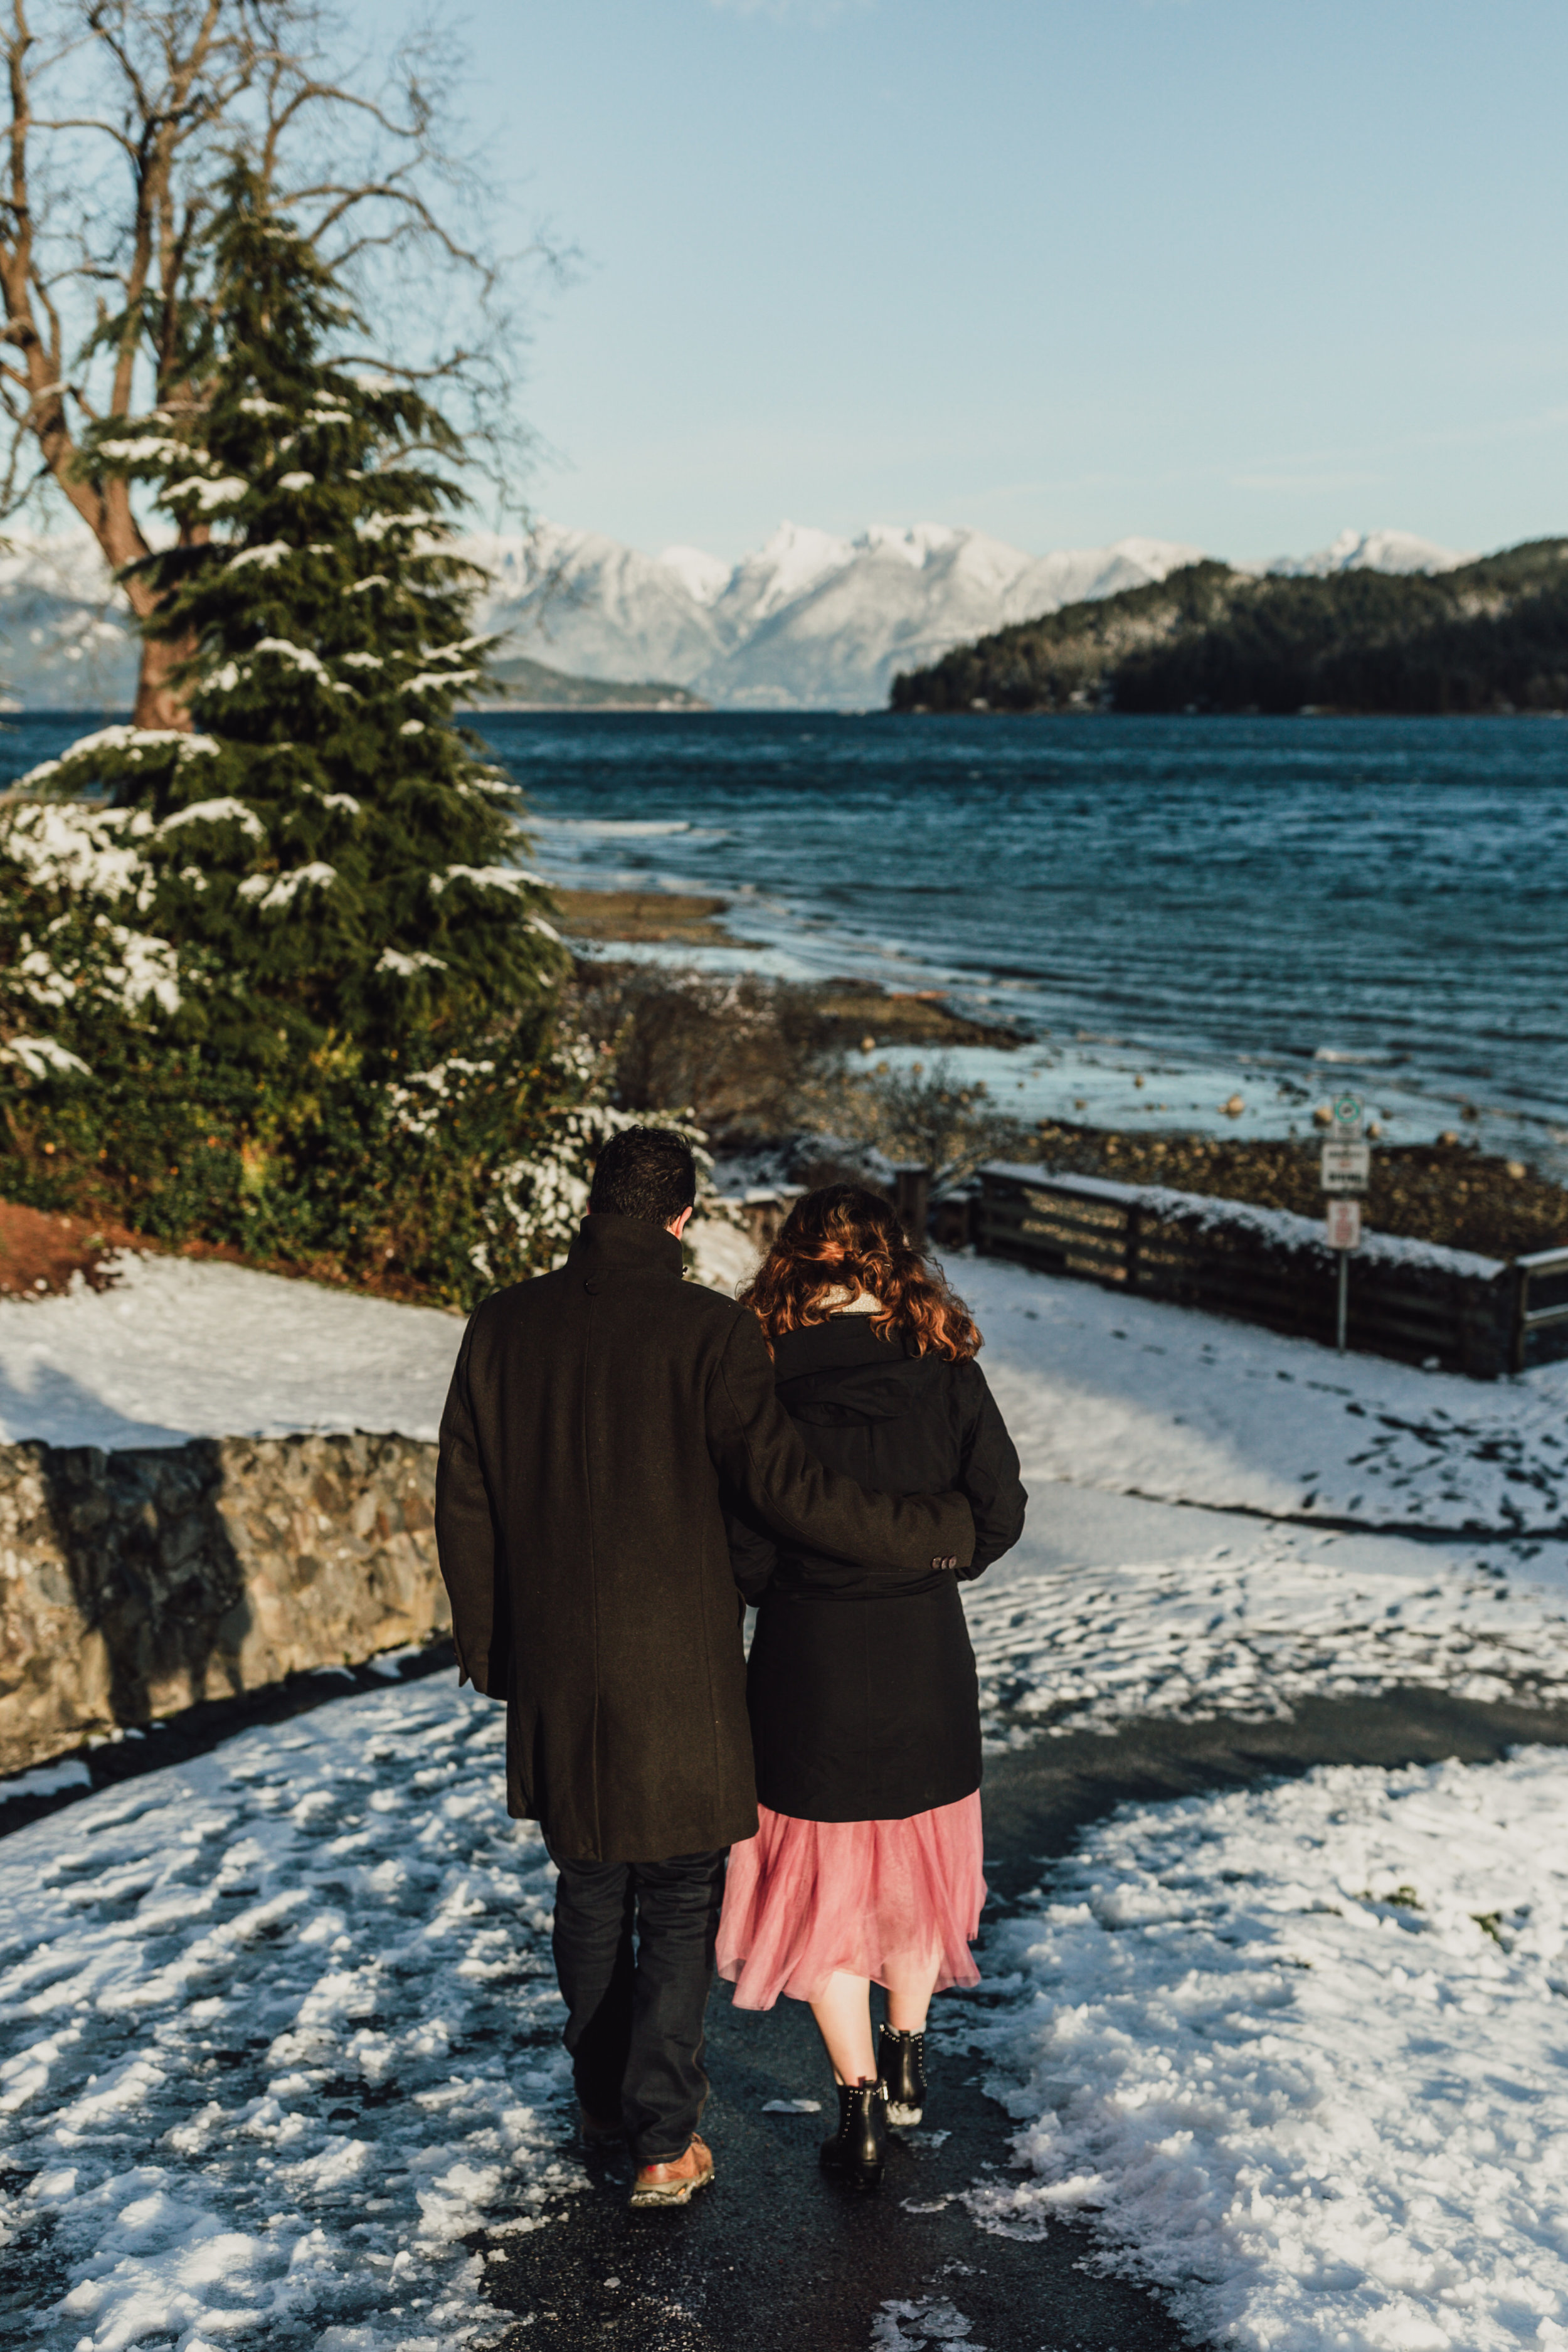 Snowy Engagement Photos - Gibsons Engagement Photos - Sunshine Coast Engagement Photos - Vancouver Wedding Photographer and Videographer - Jennifer Picard Photography086.JPG